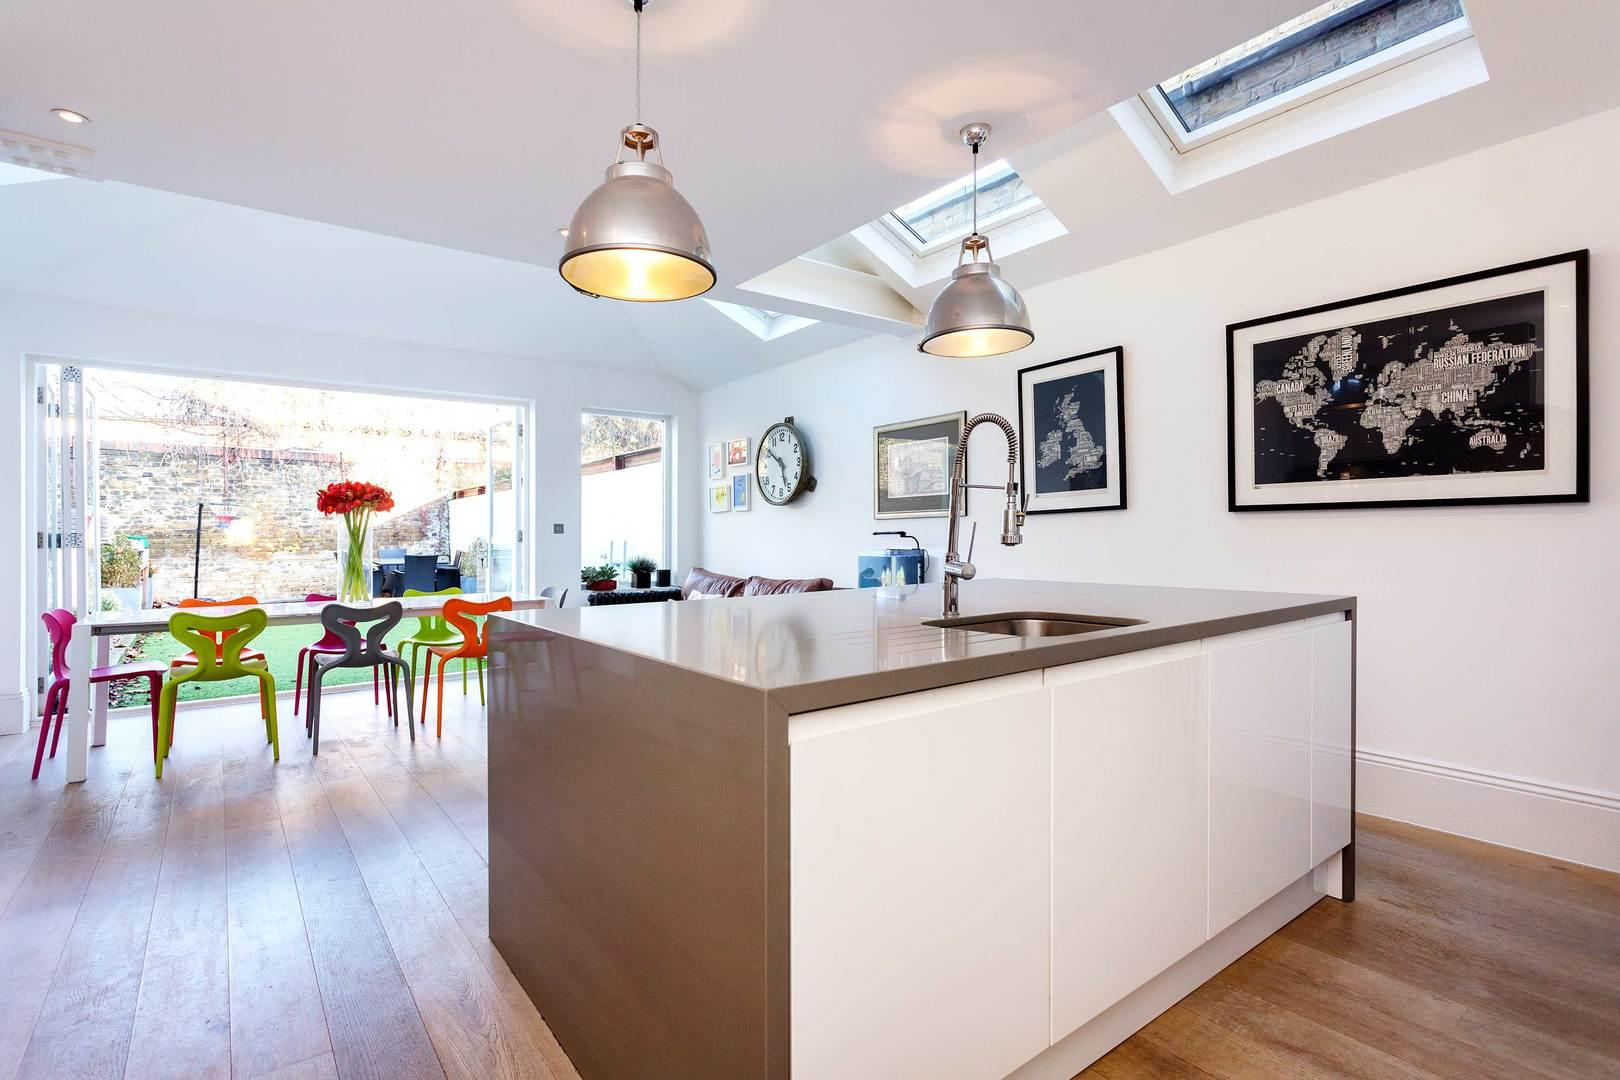 Property Image 1 - Impressive Clapham Family Home with Spacious Interior